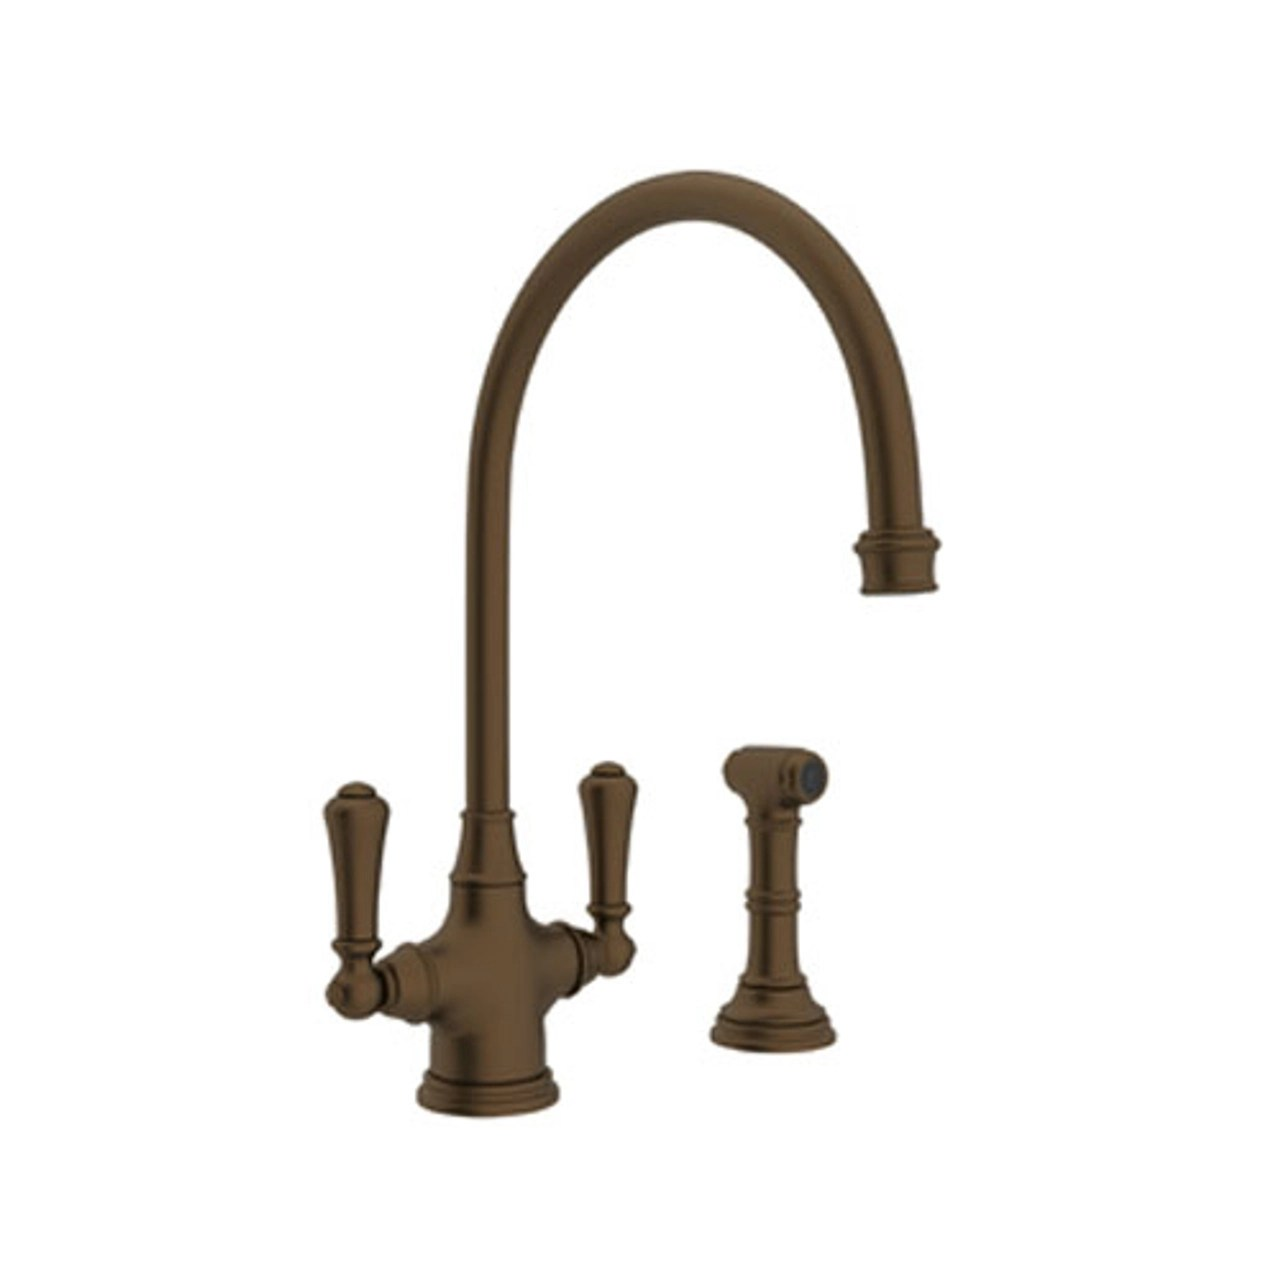 rohl u 4710eb 2 perrin and rowe kitchen faucet